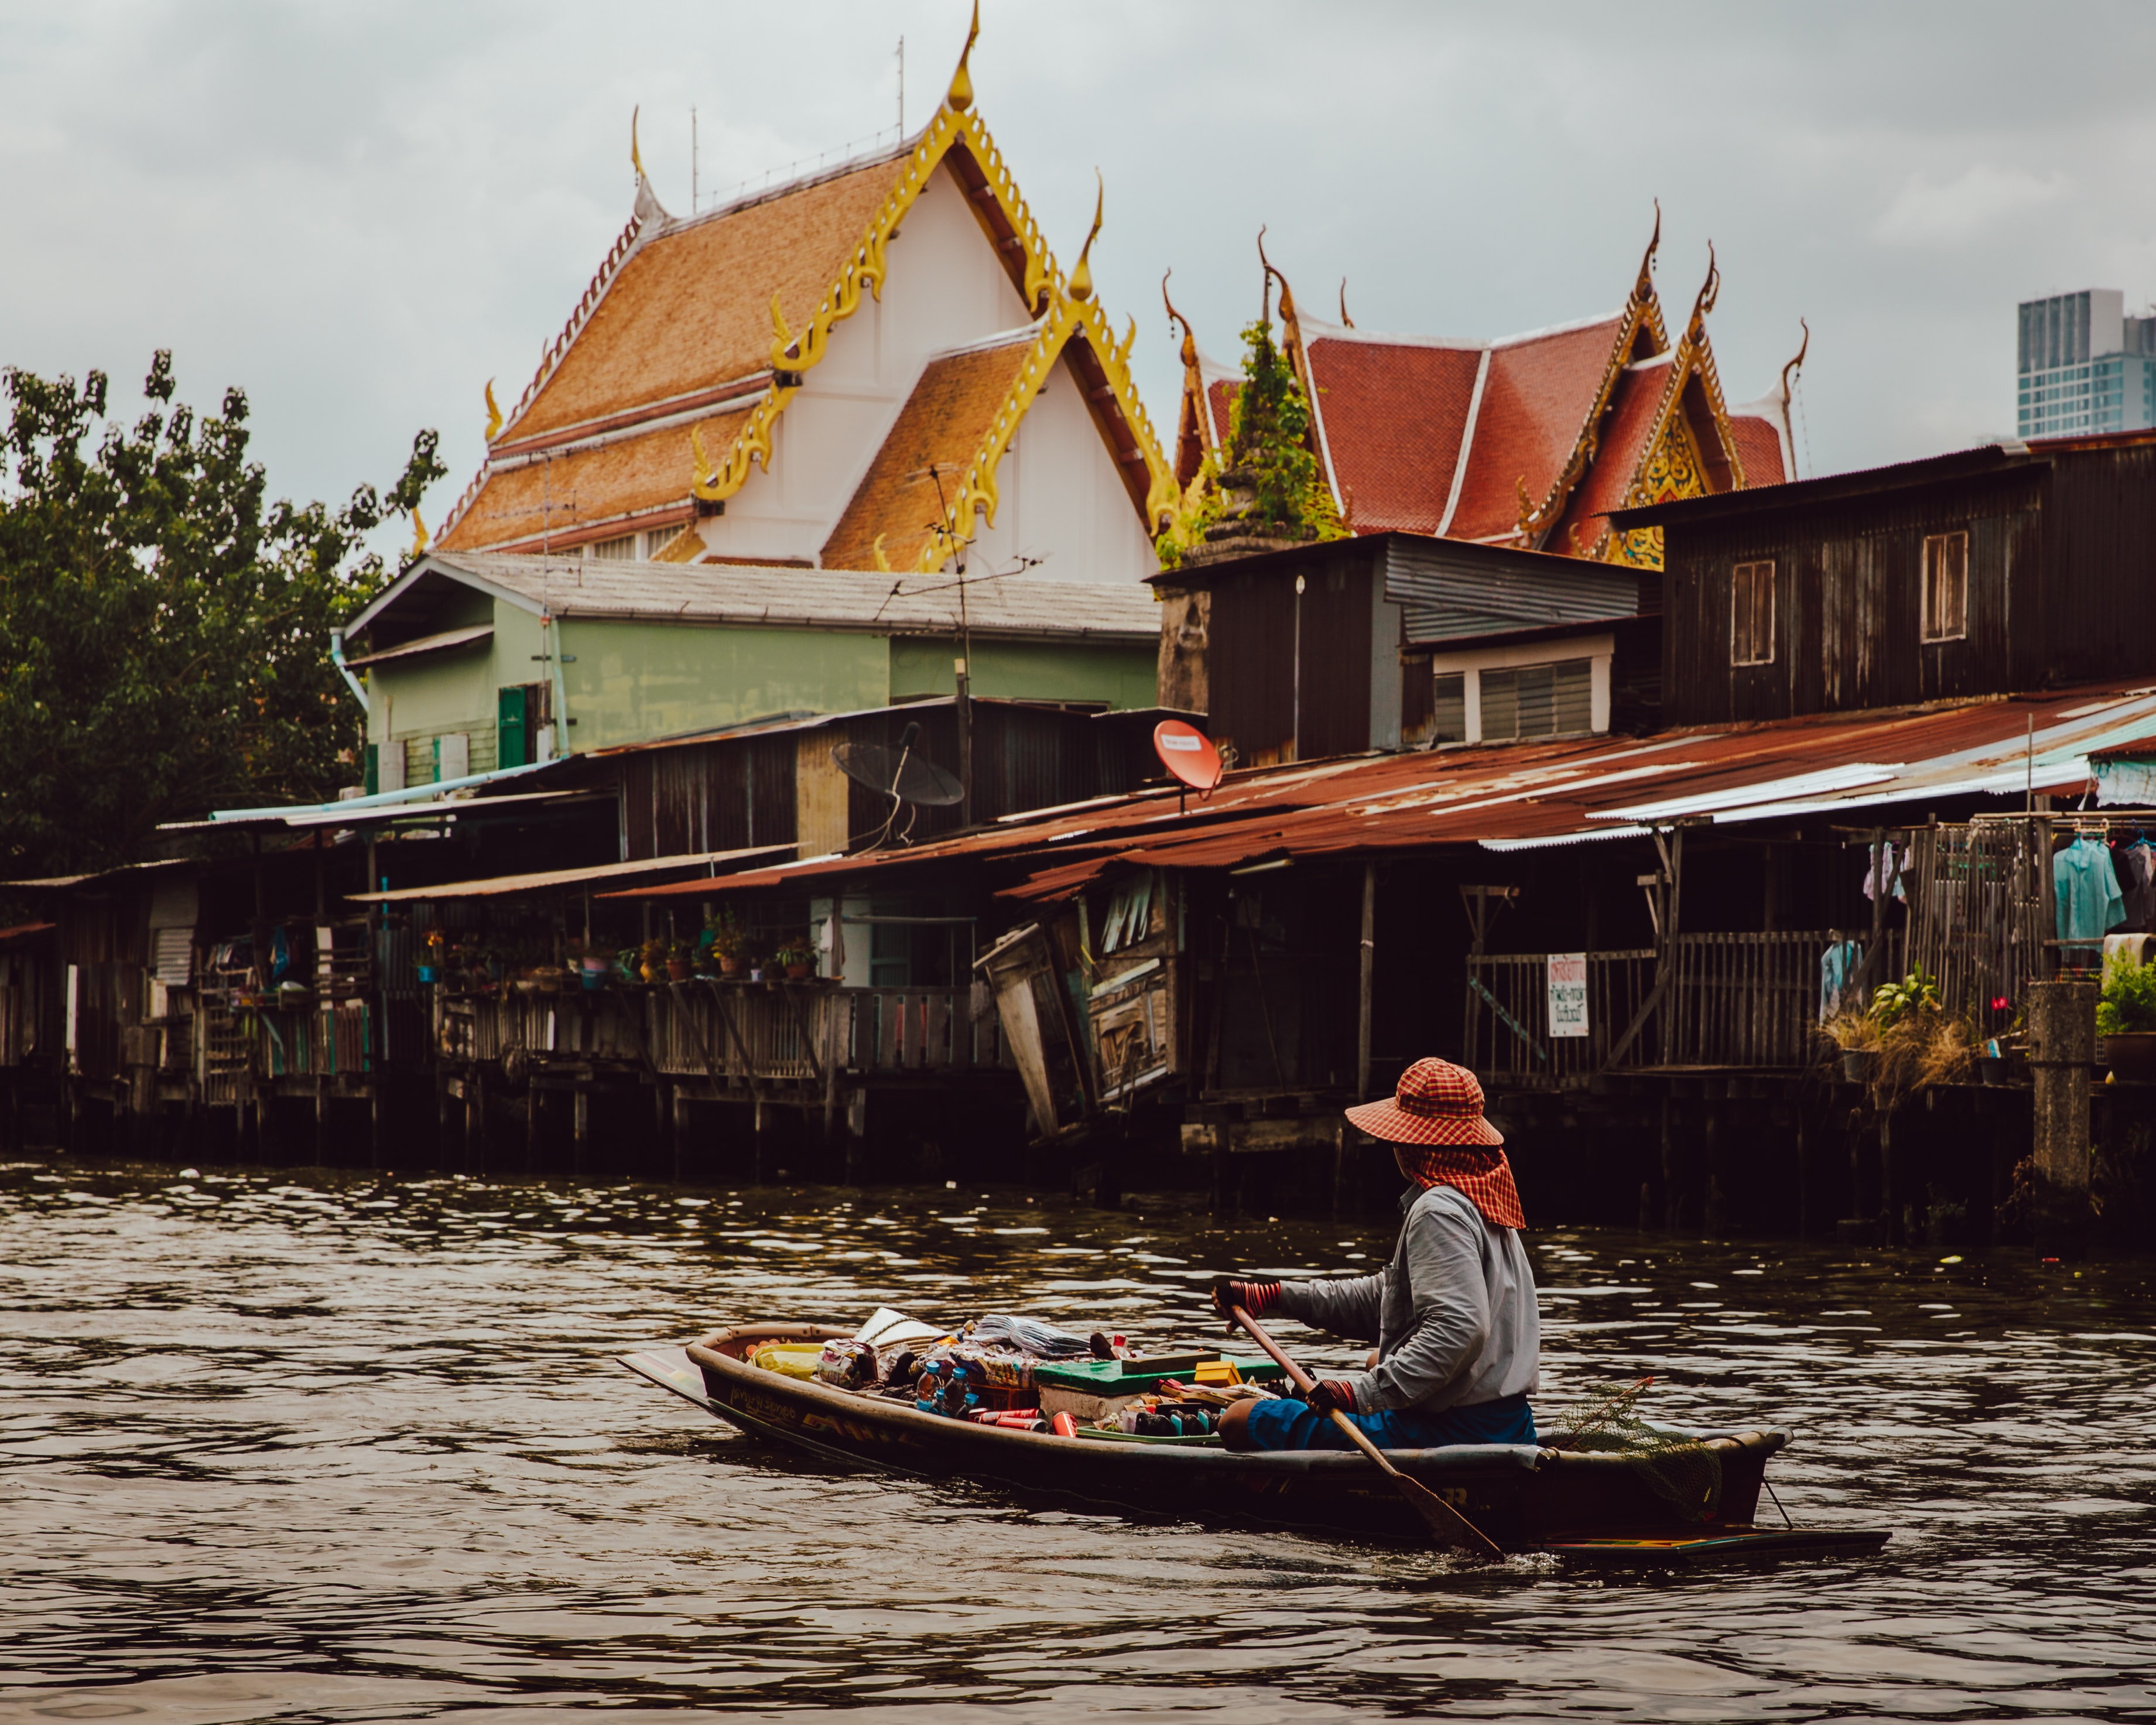 woman riding boat holding paddle on calm body of water in front of houses